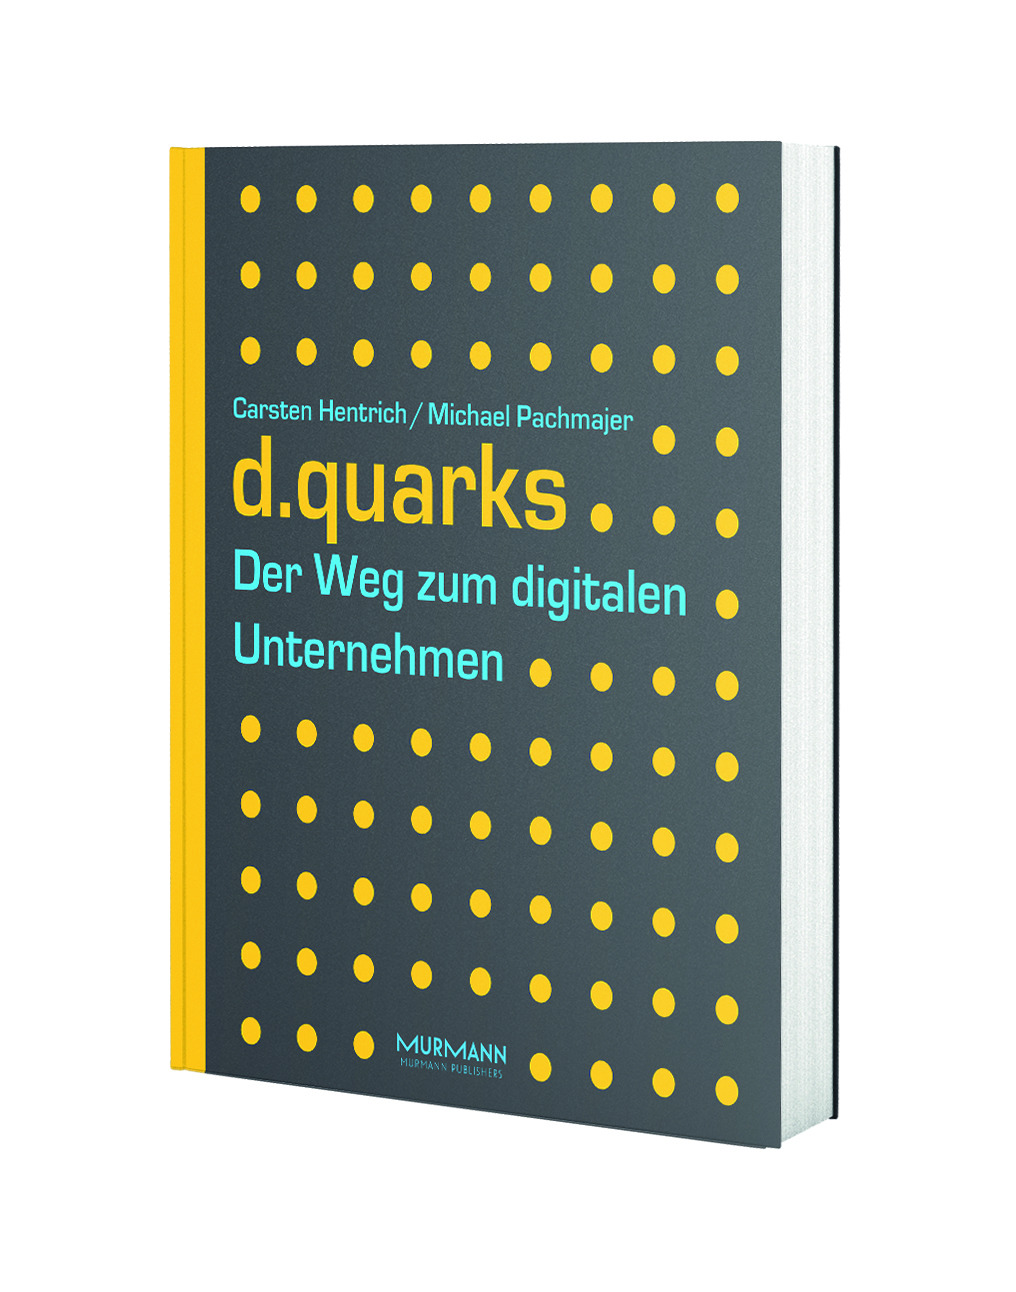 d.quarks / Carsten Hentrich & Michael Pachmajer